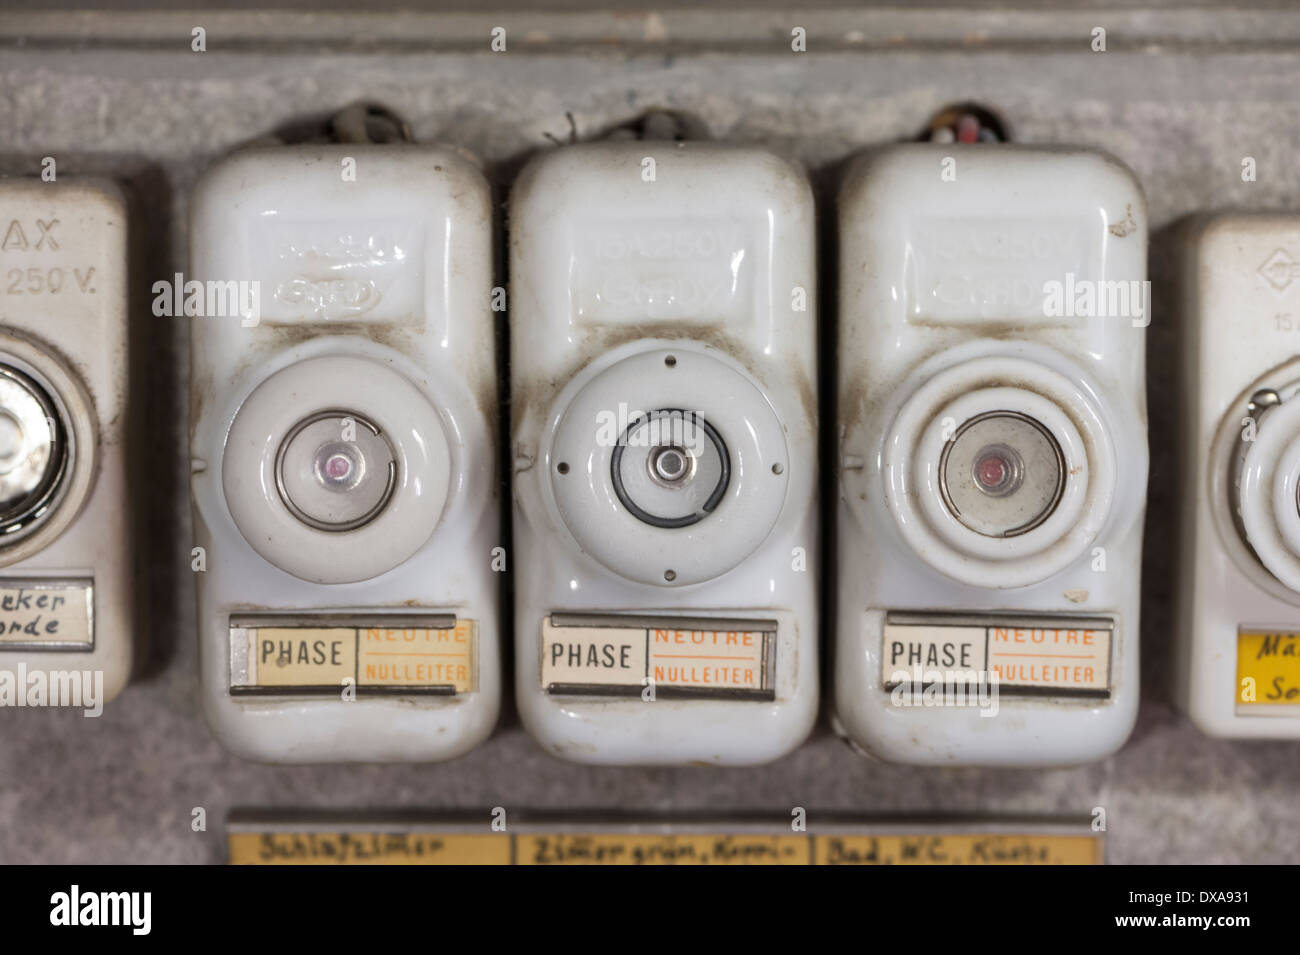 old fuses fuse box stock photos old fuses fuse box stock images rh alamy  com Electrical